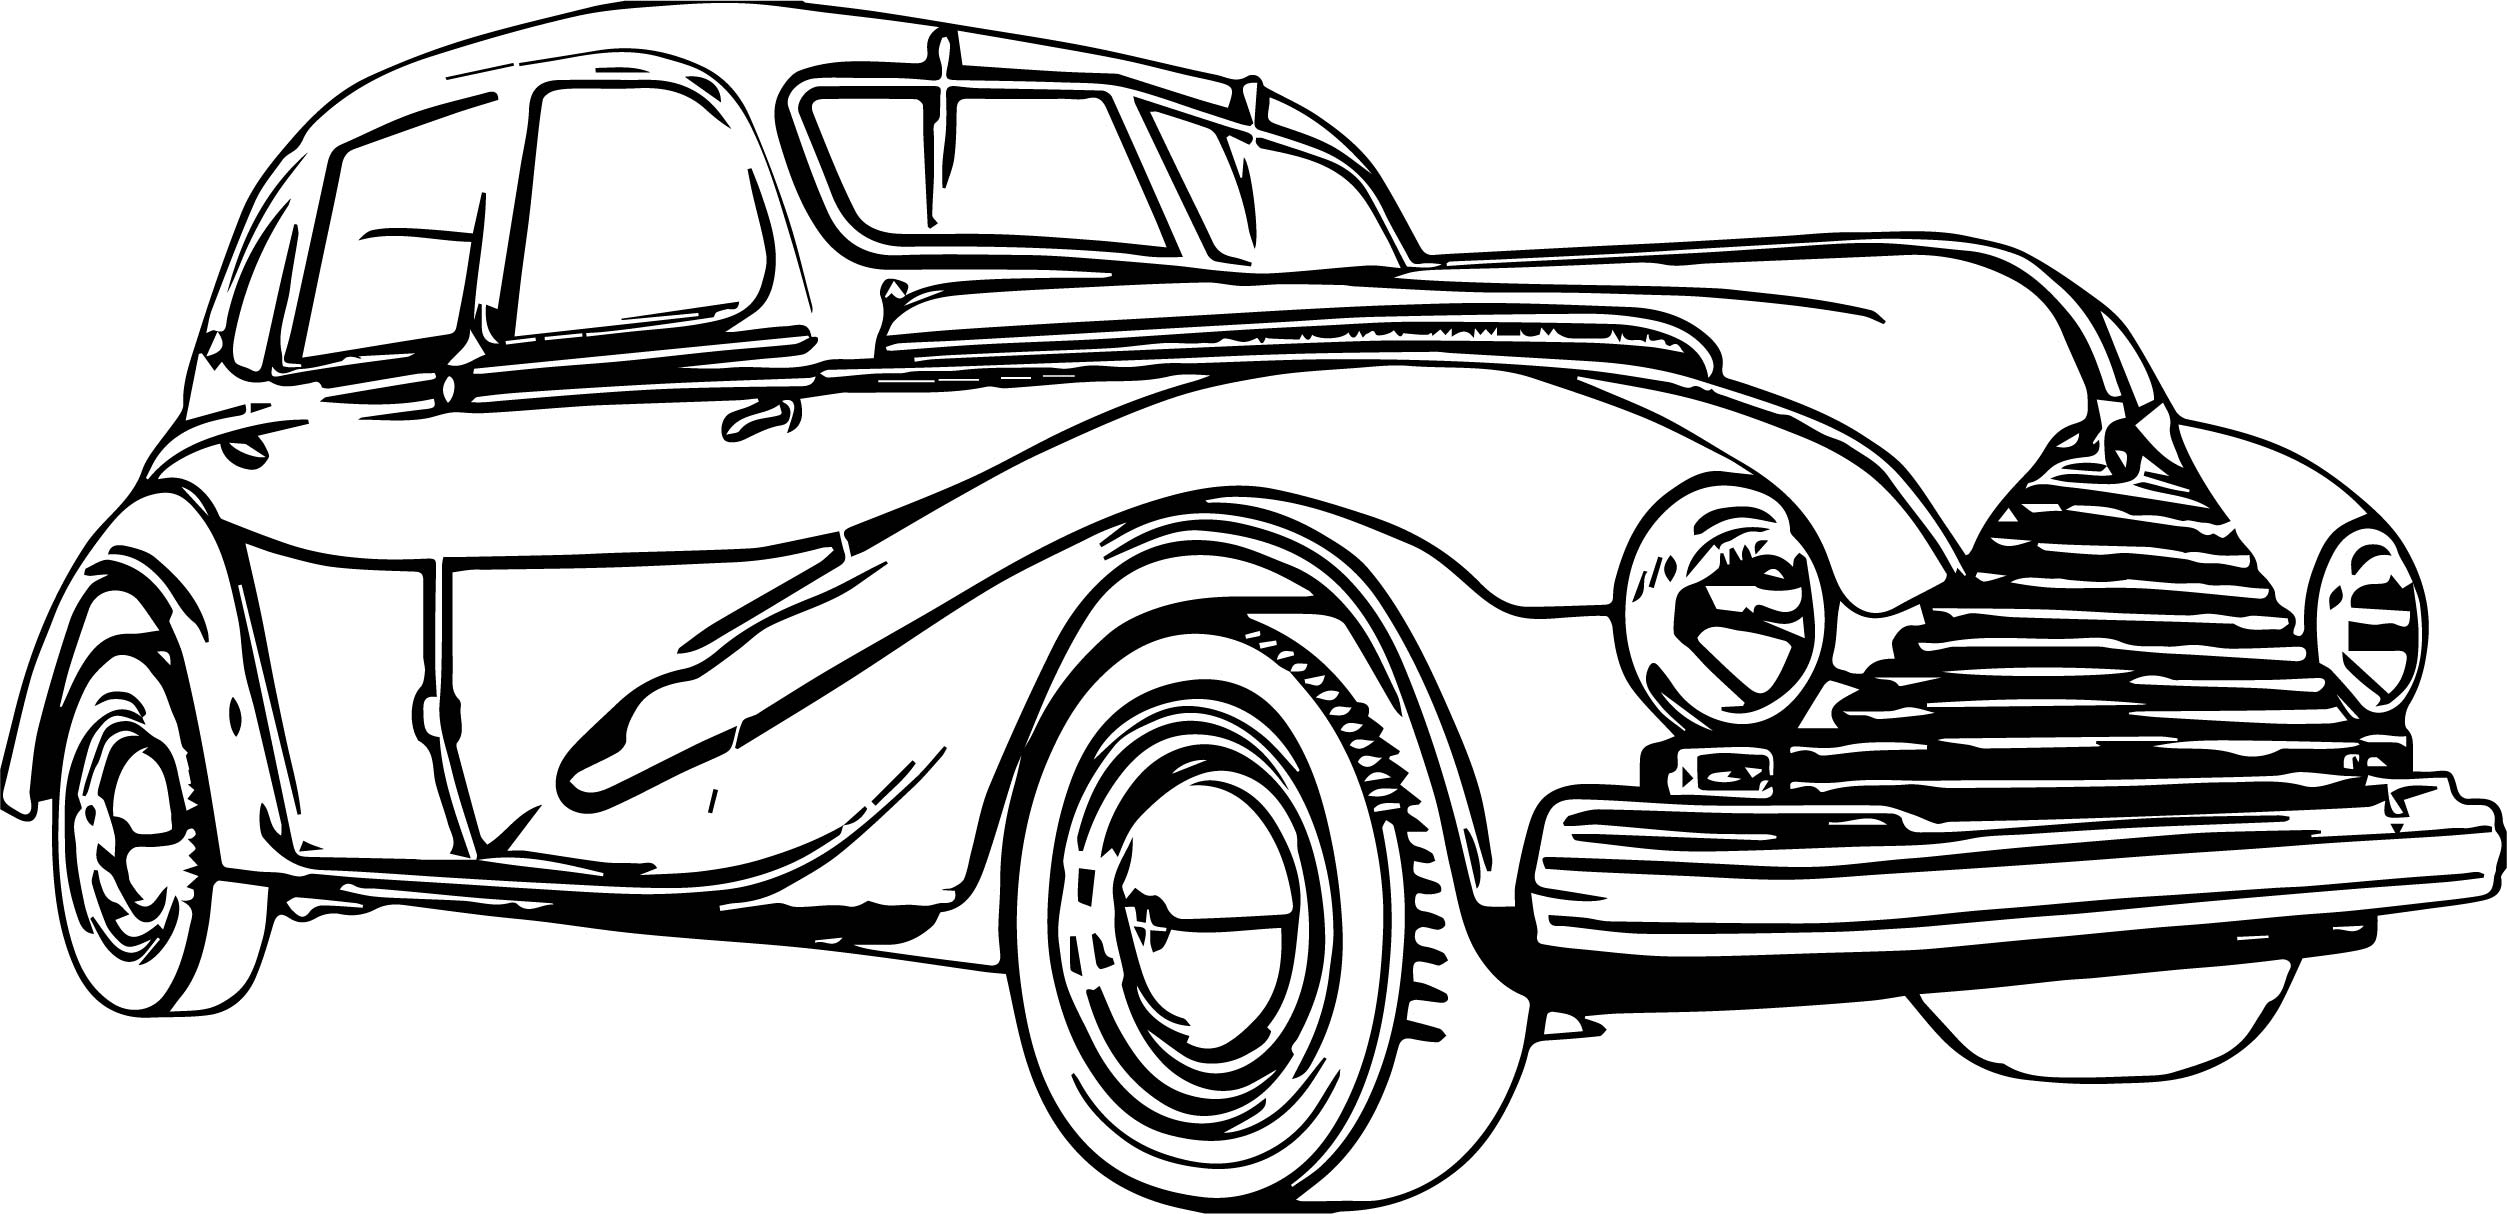 vintage car coloring pages - small vintage antique car coloring page